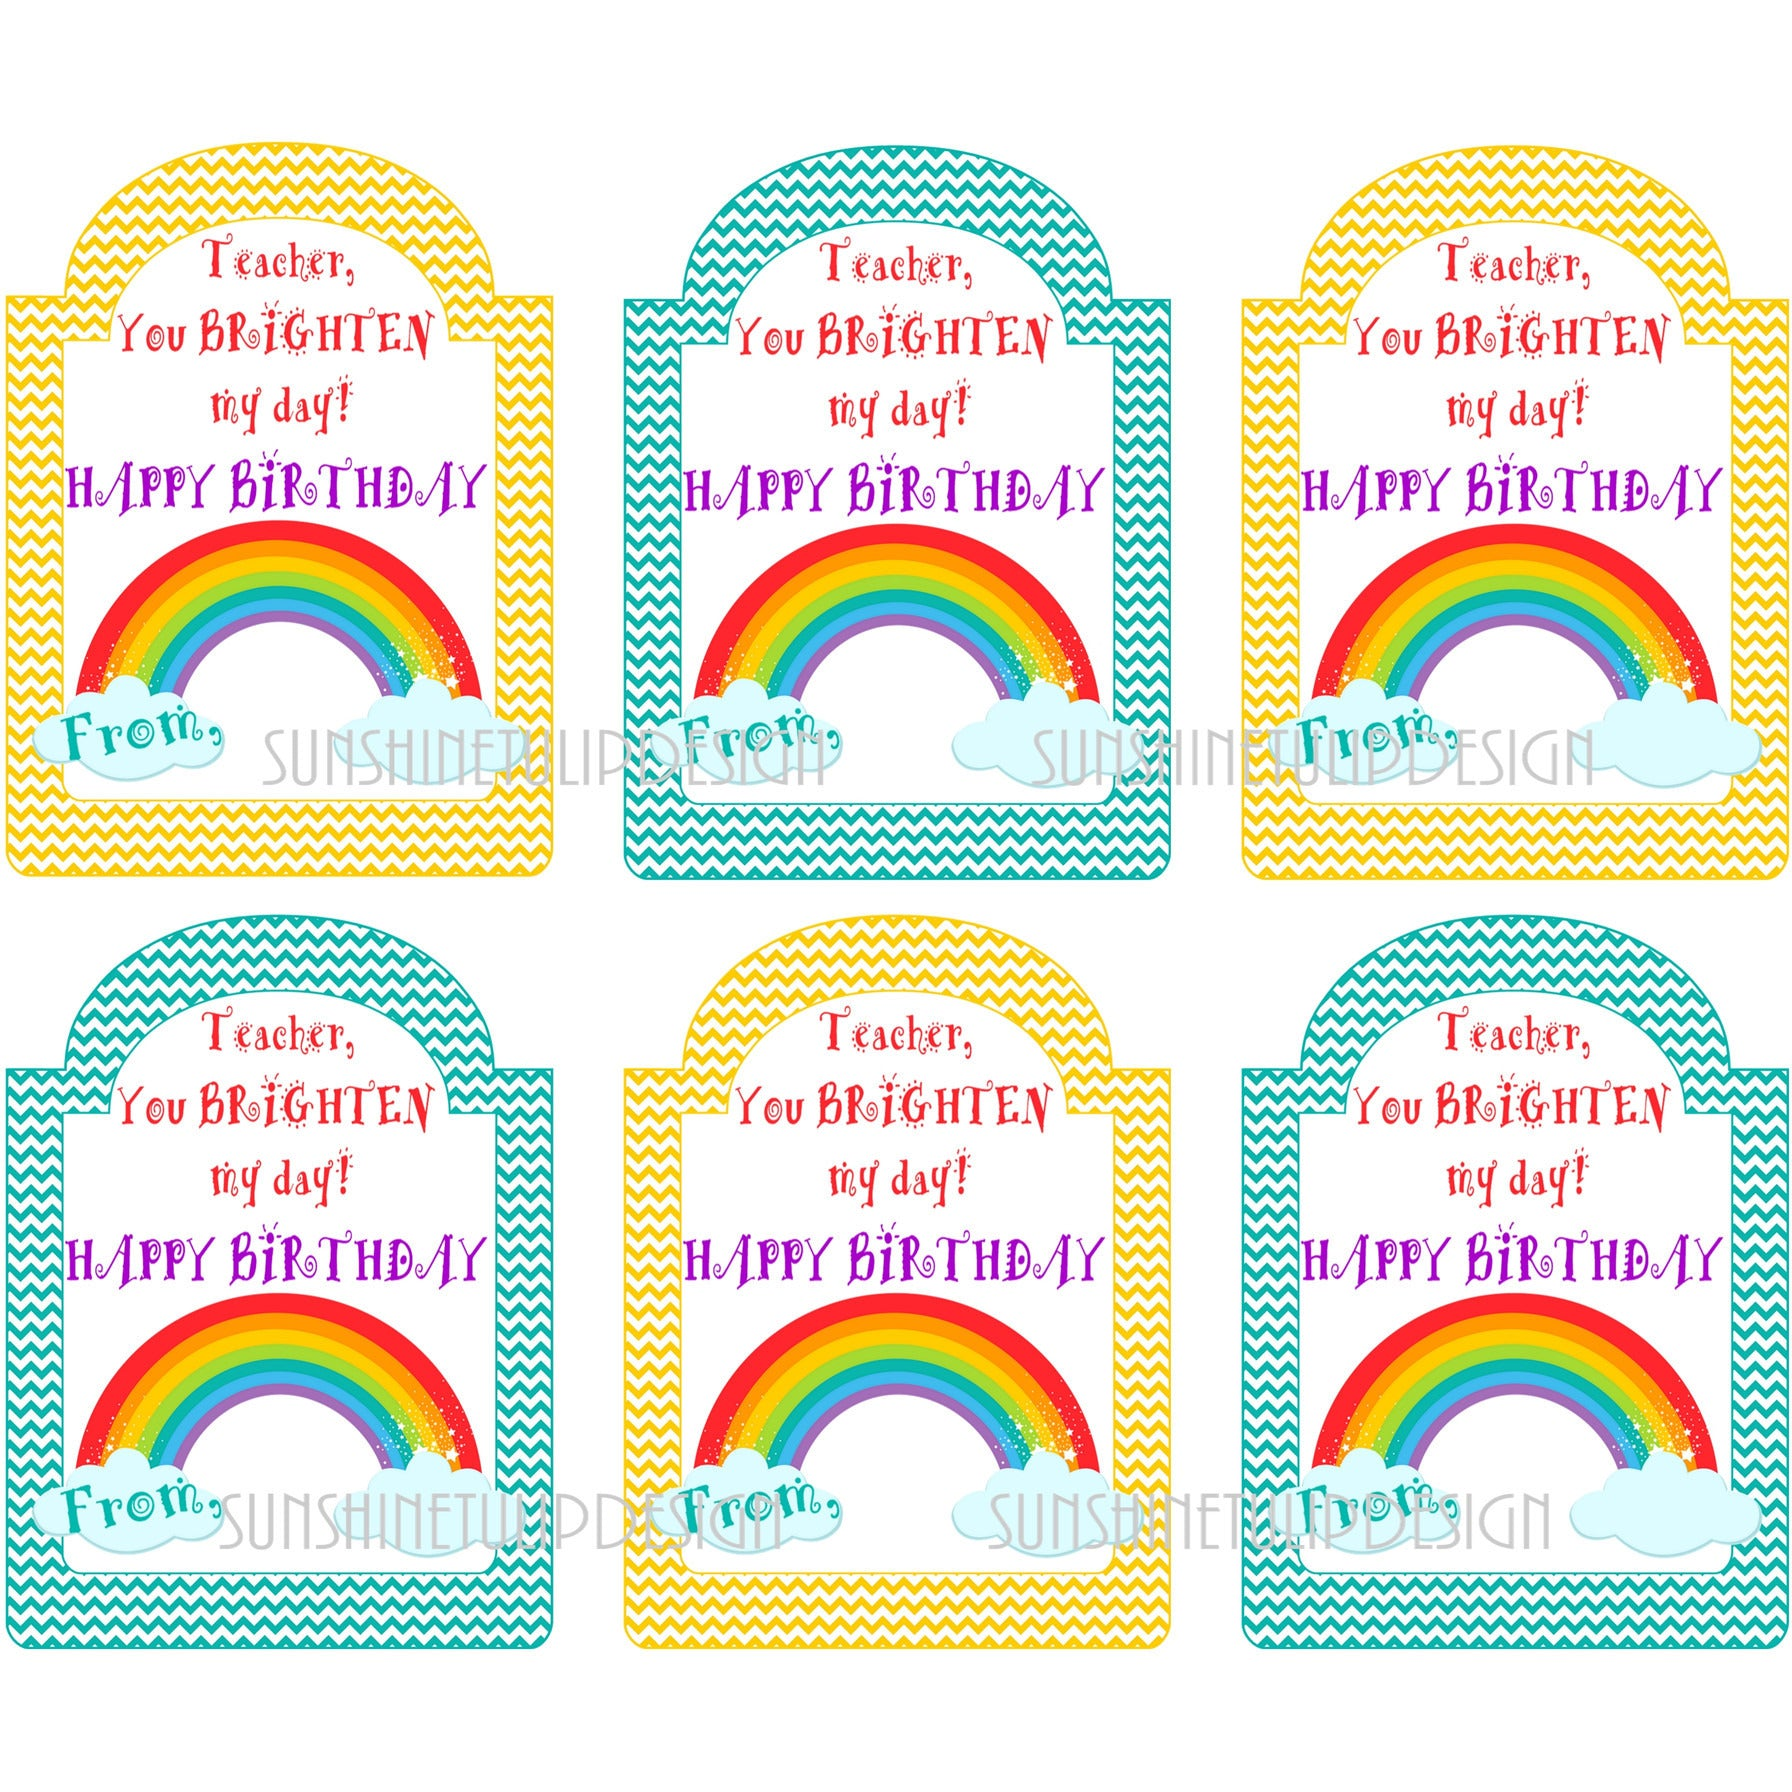 picture relating to Printable Happy Birthday Images identified as Printable Trainer Birthday Reward Tags, Delighted Birthday Printable Instructor Tags as a result of SUNSHINETULIPDESIGN